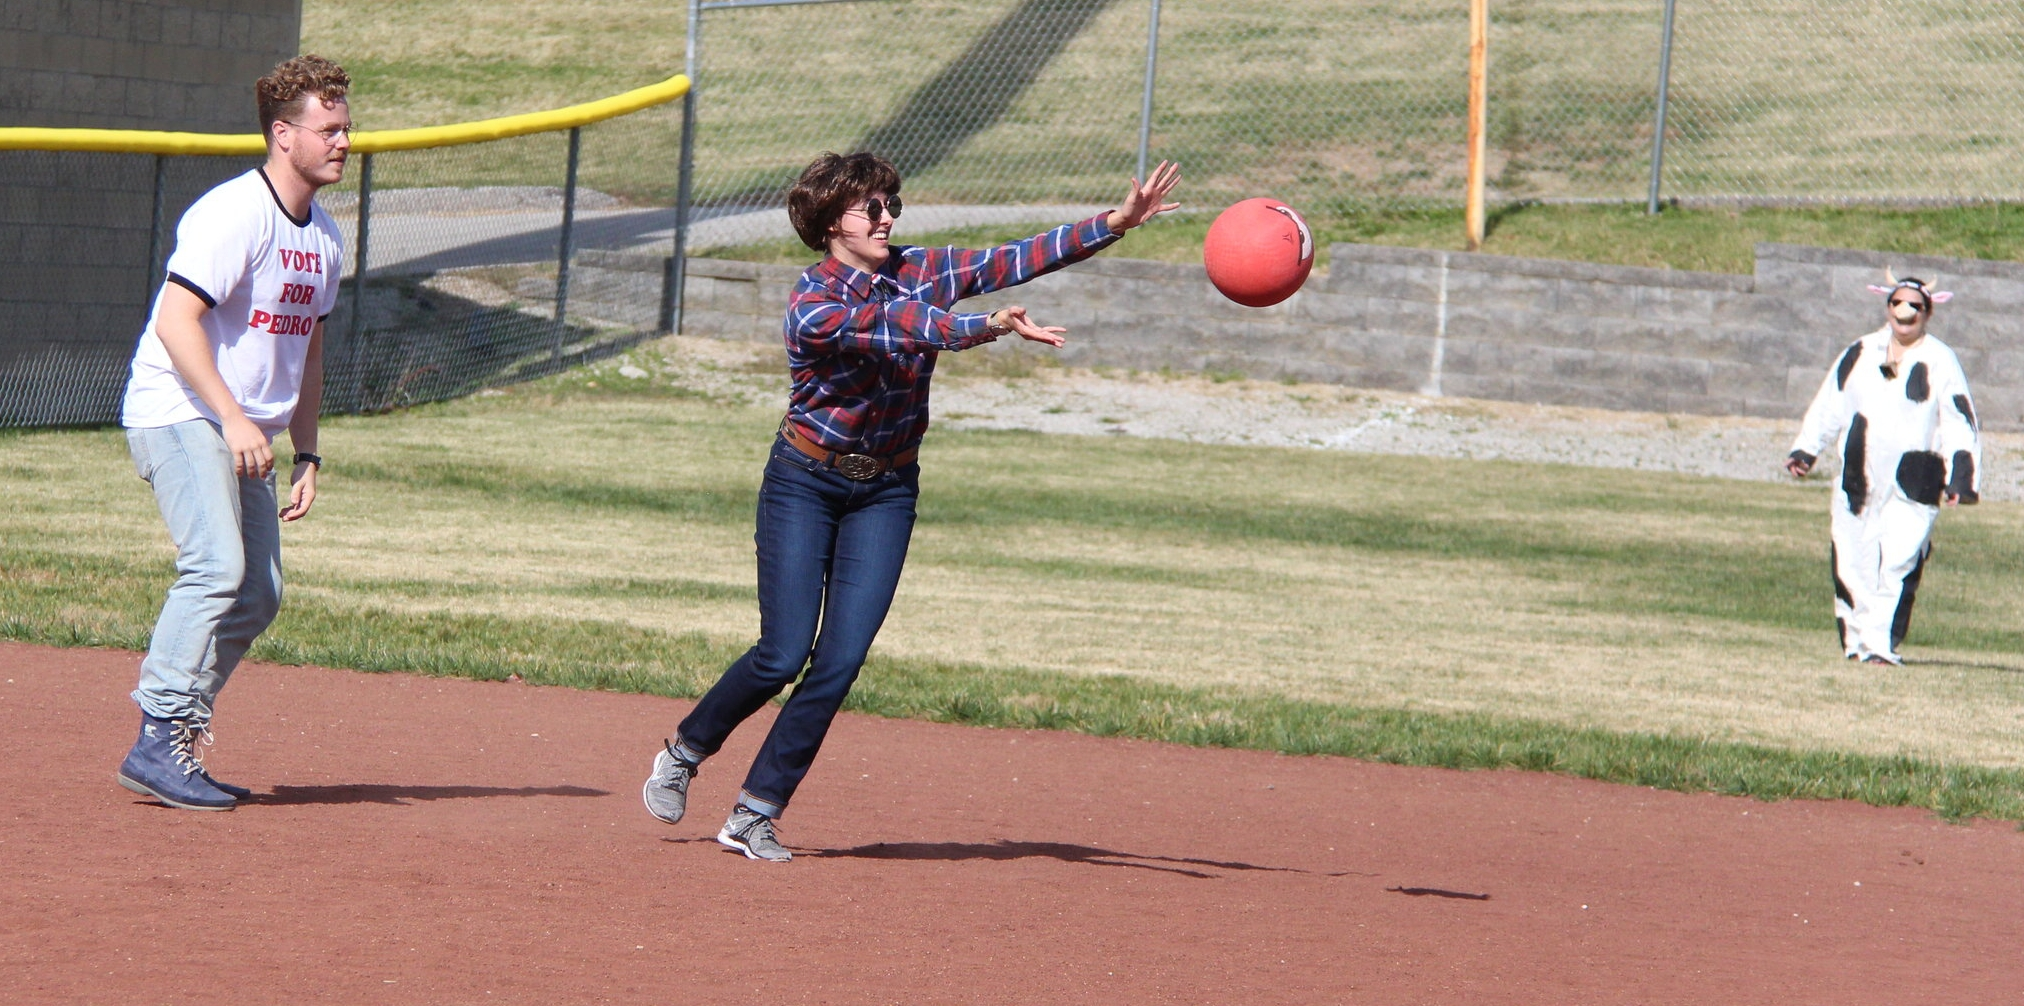 "ROSS MARTIN/Citizen photo Rachelle West, center, makes a throw to second during a costume kickball game played Saturday, Oct. 29 at Harrel Ferrel Park in Platte City. She was dressed as Pedro from the movie ""Napoleon Dynamite."" Jake Baker, left, dressed up as the title character."